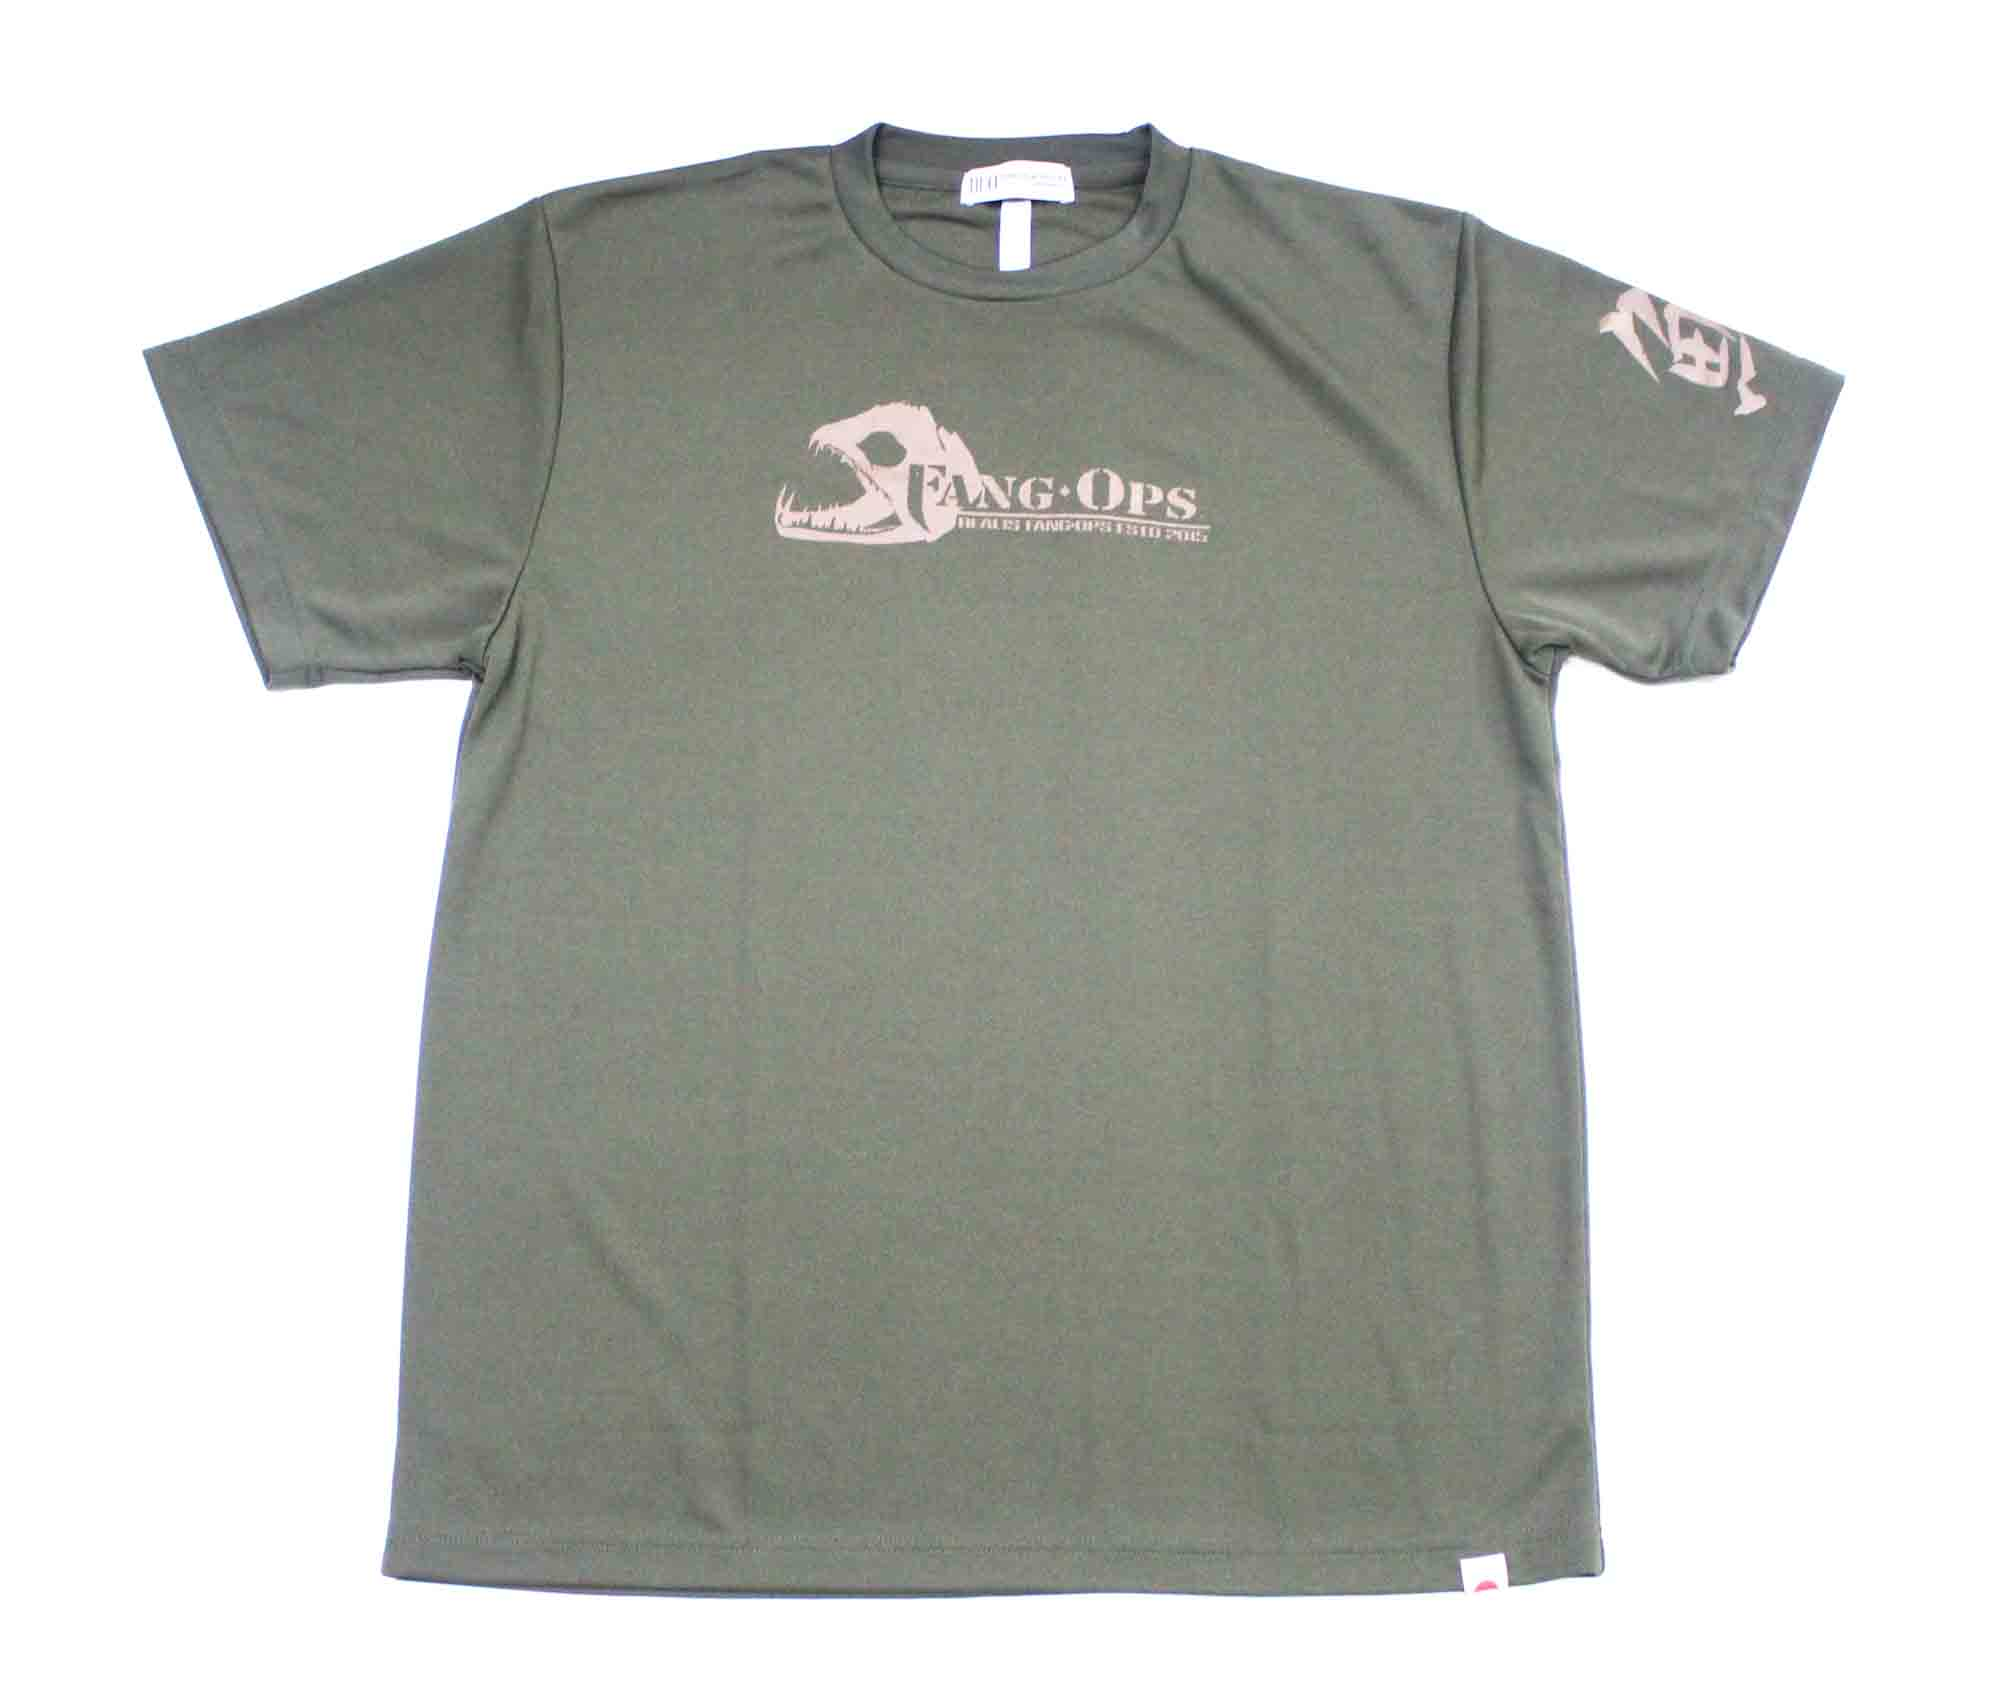 Duo T Shirt Fang Ops Beast Short Sleeve Dry Fit Army Green Size XXL (1737)